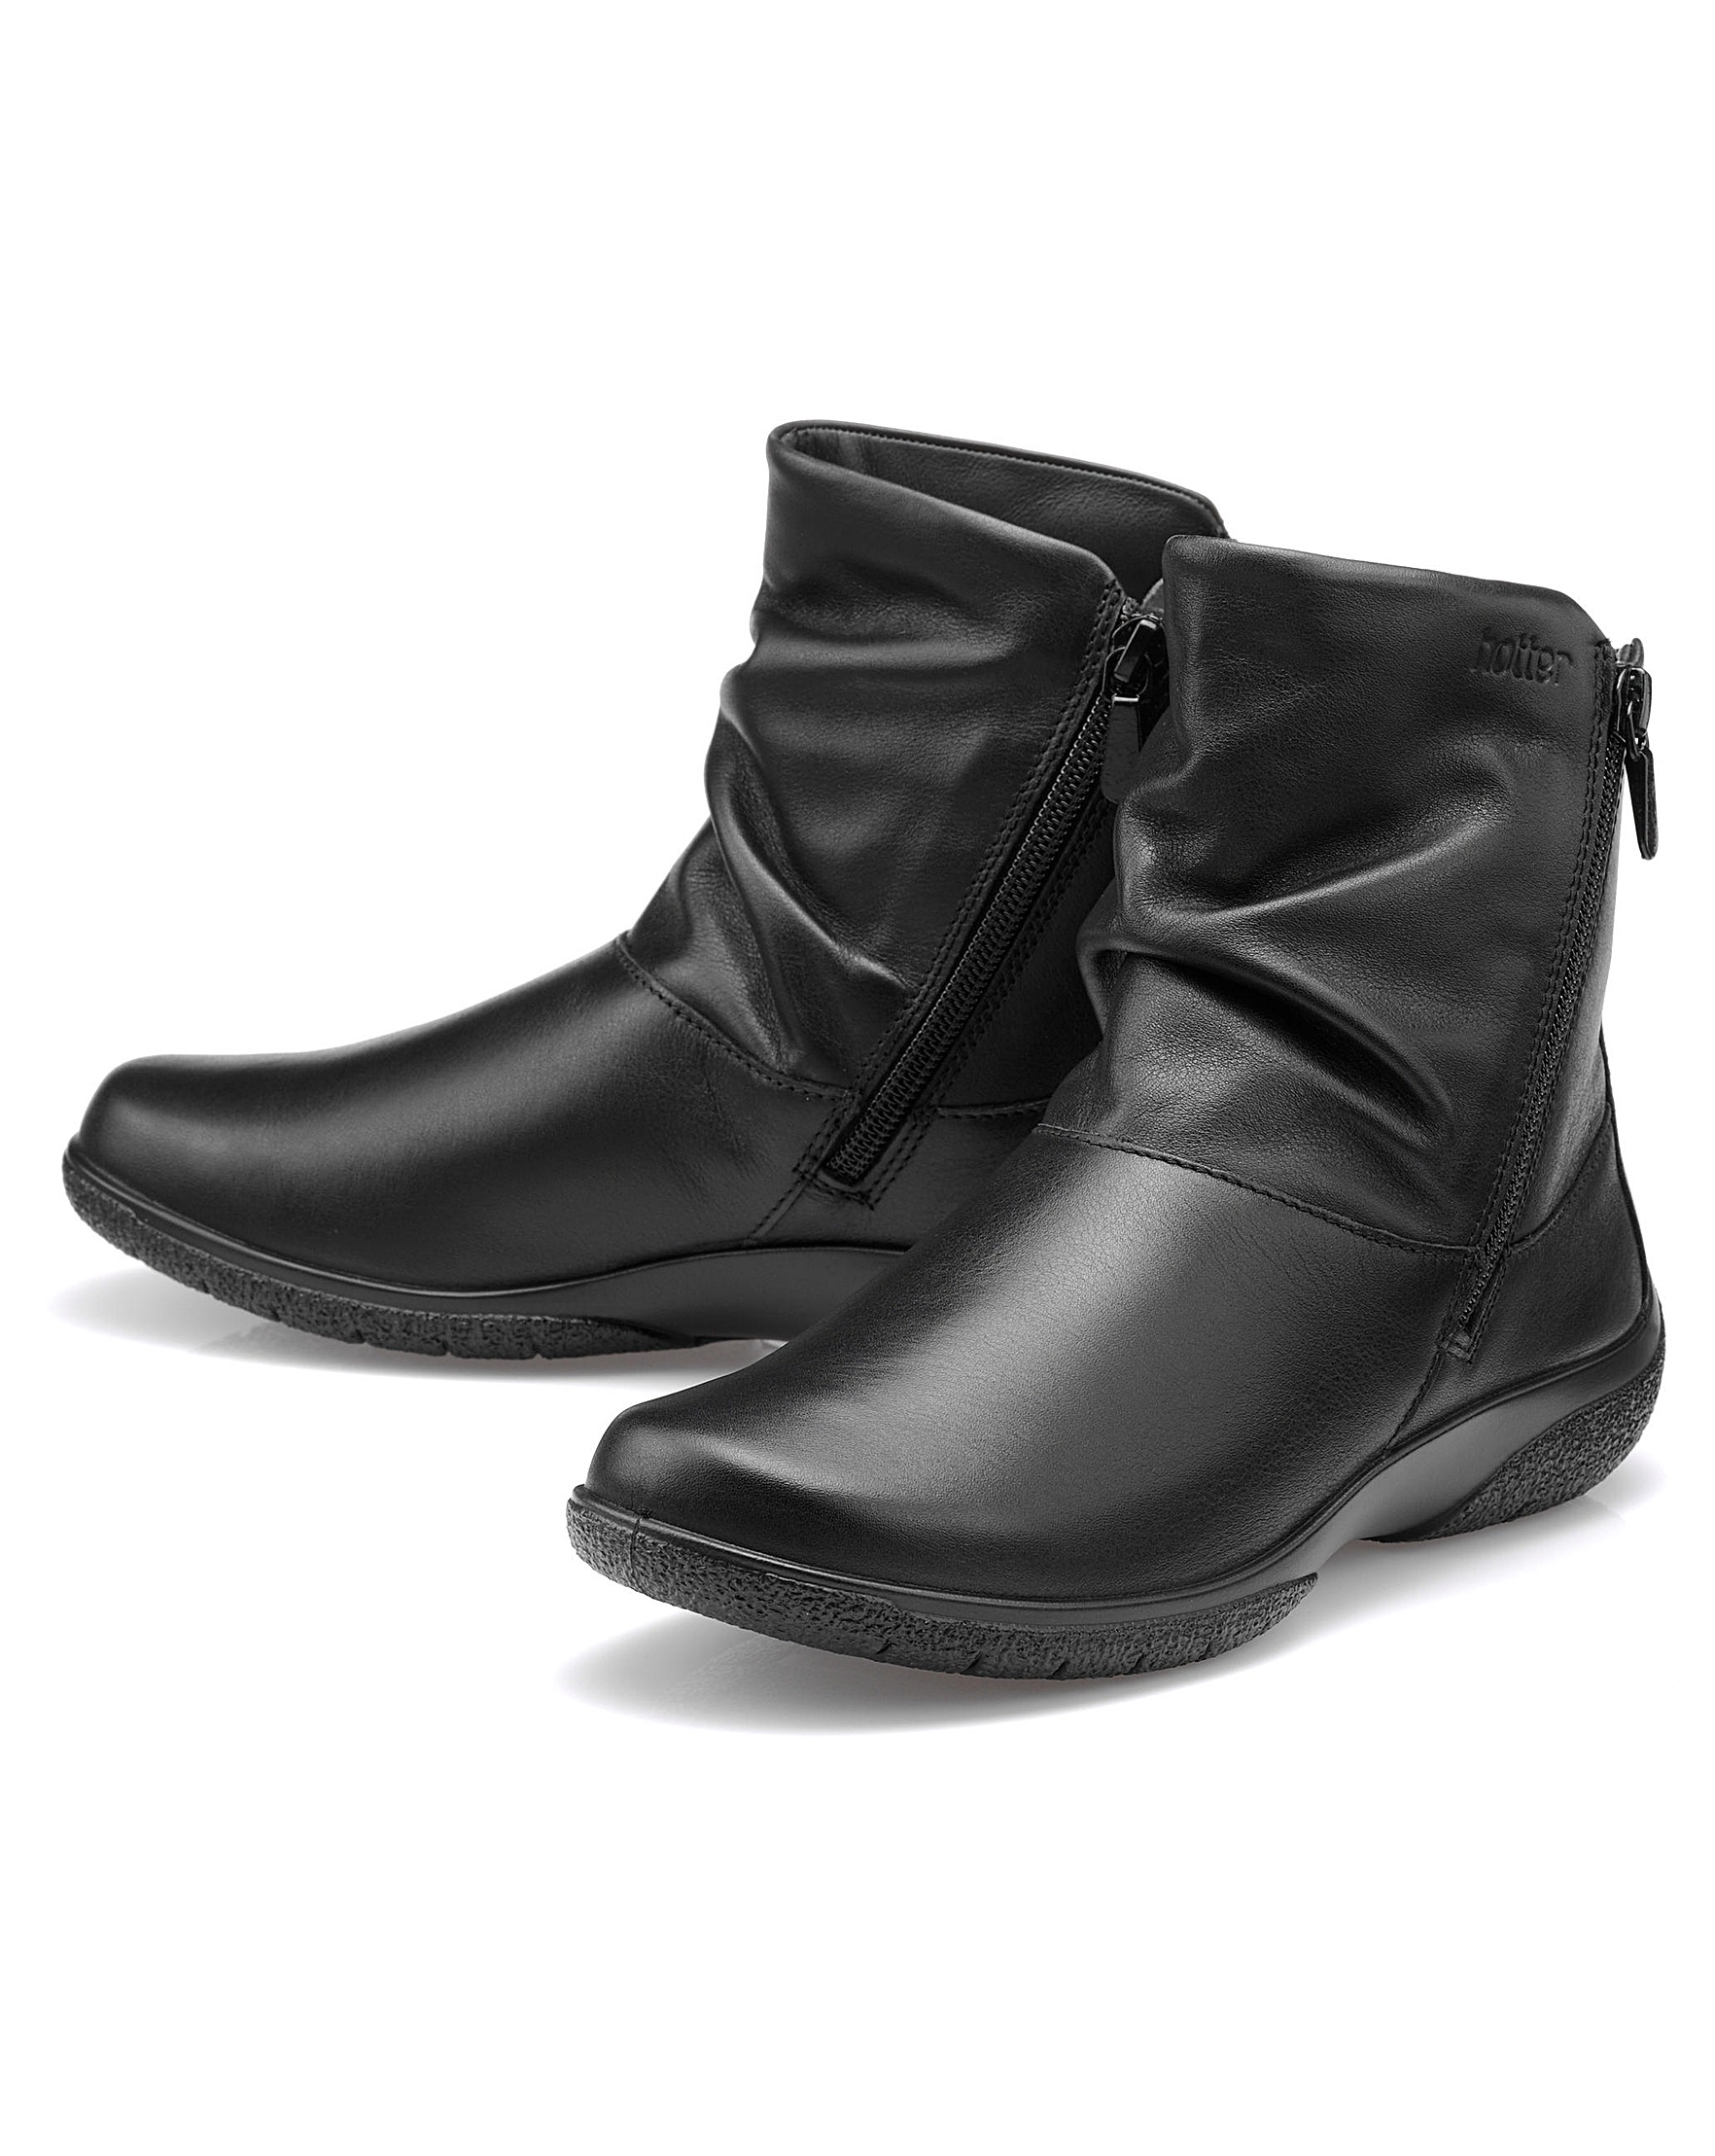 15e0a2057e6fc Hotter Whisper Standard Fit Ankle Boot | J D Williams